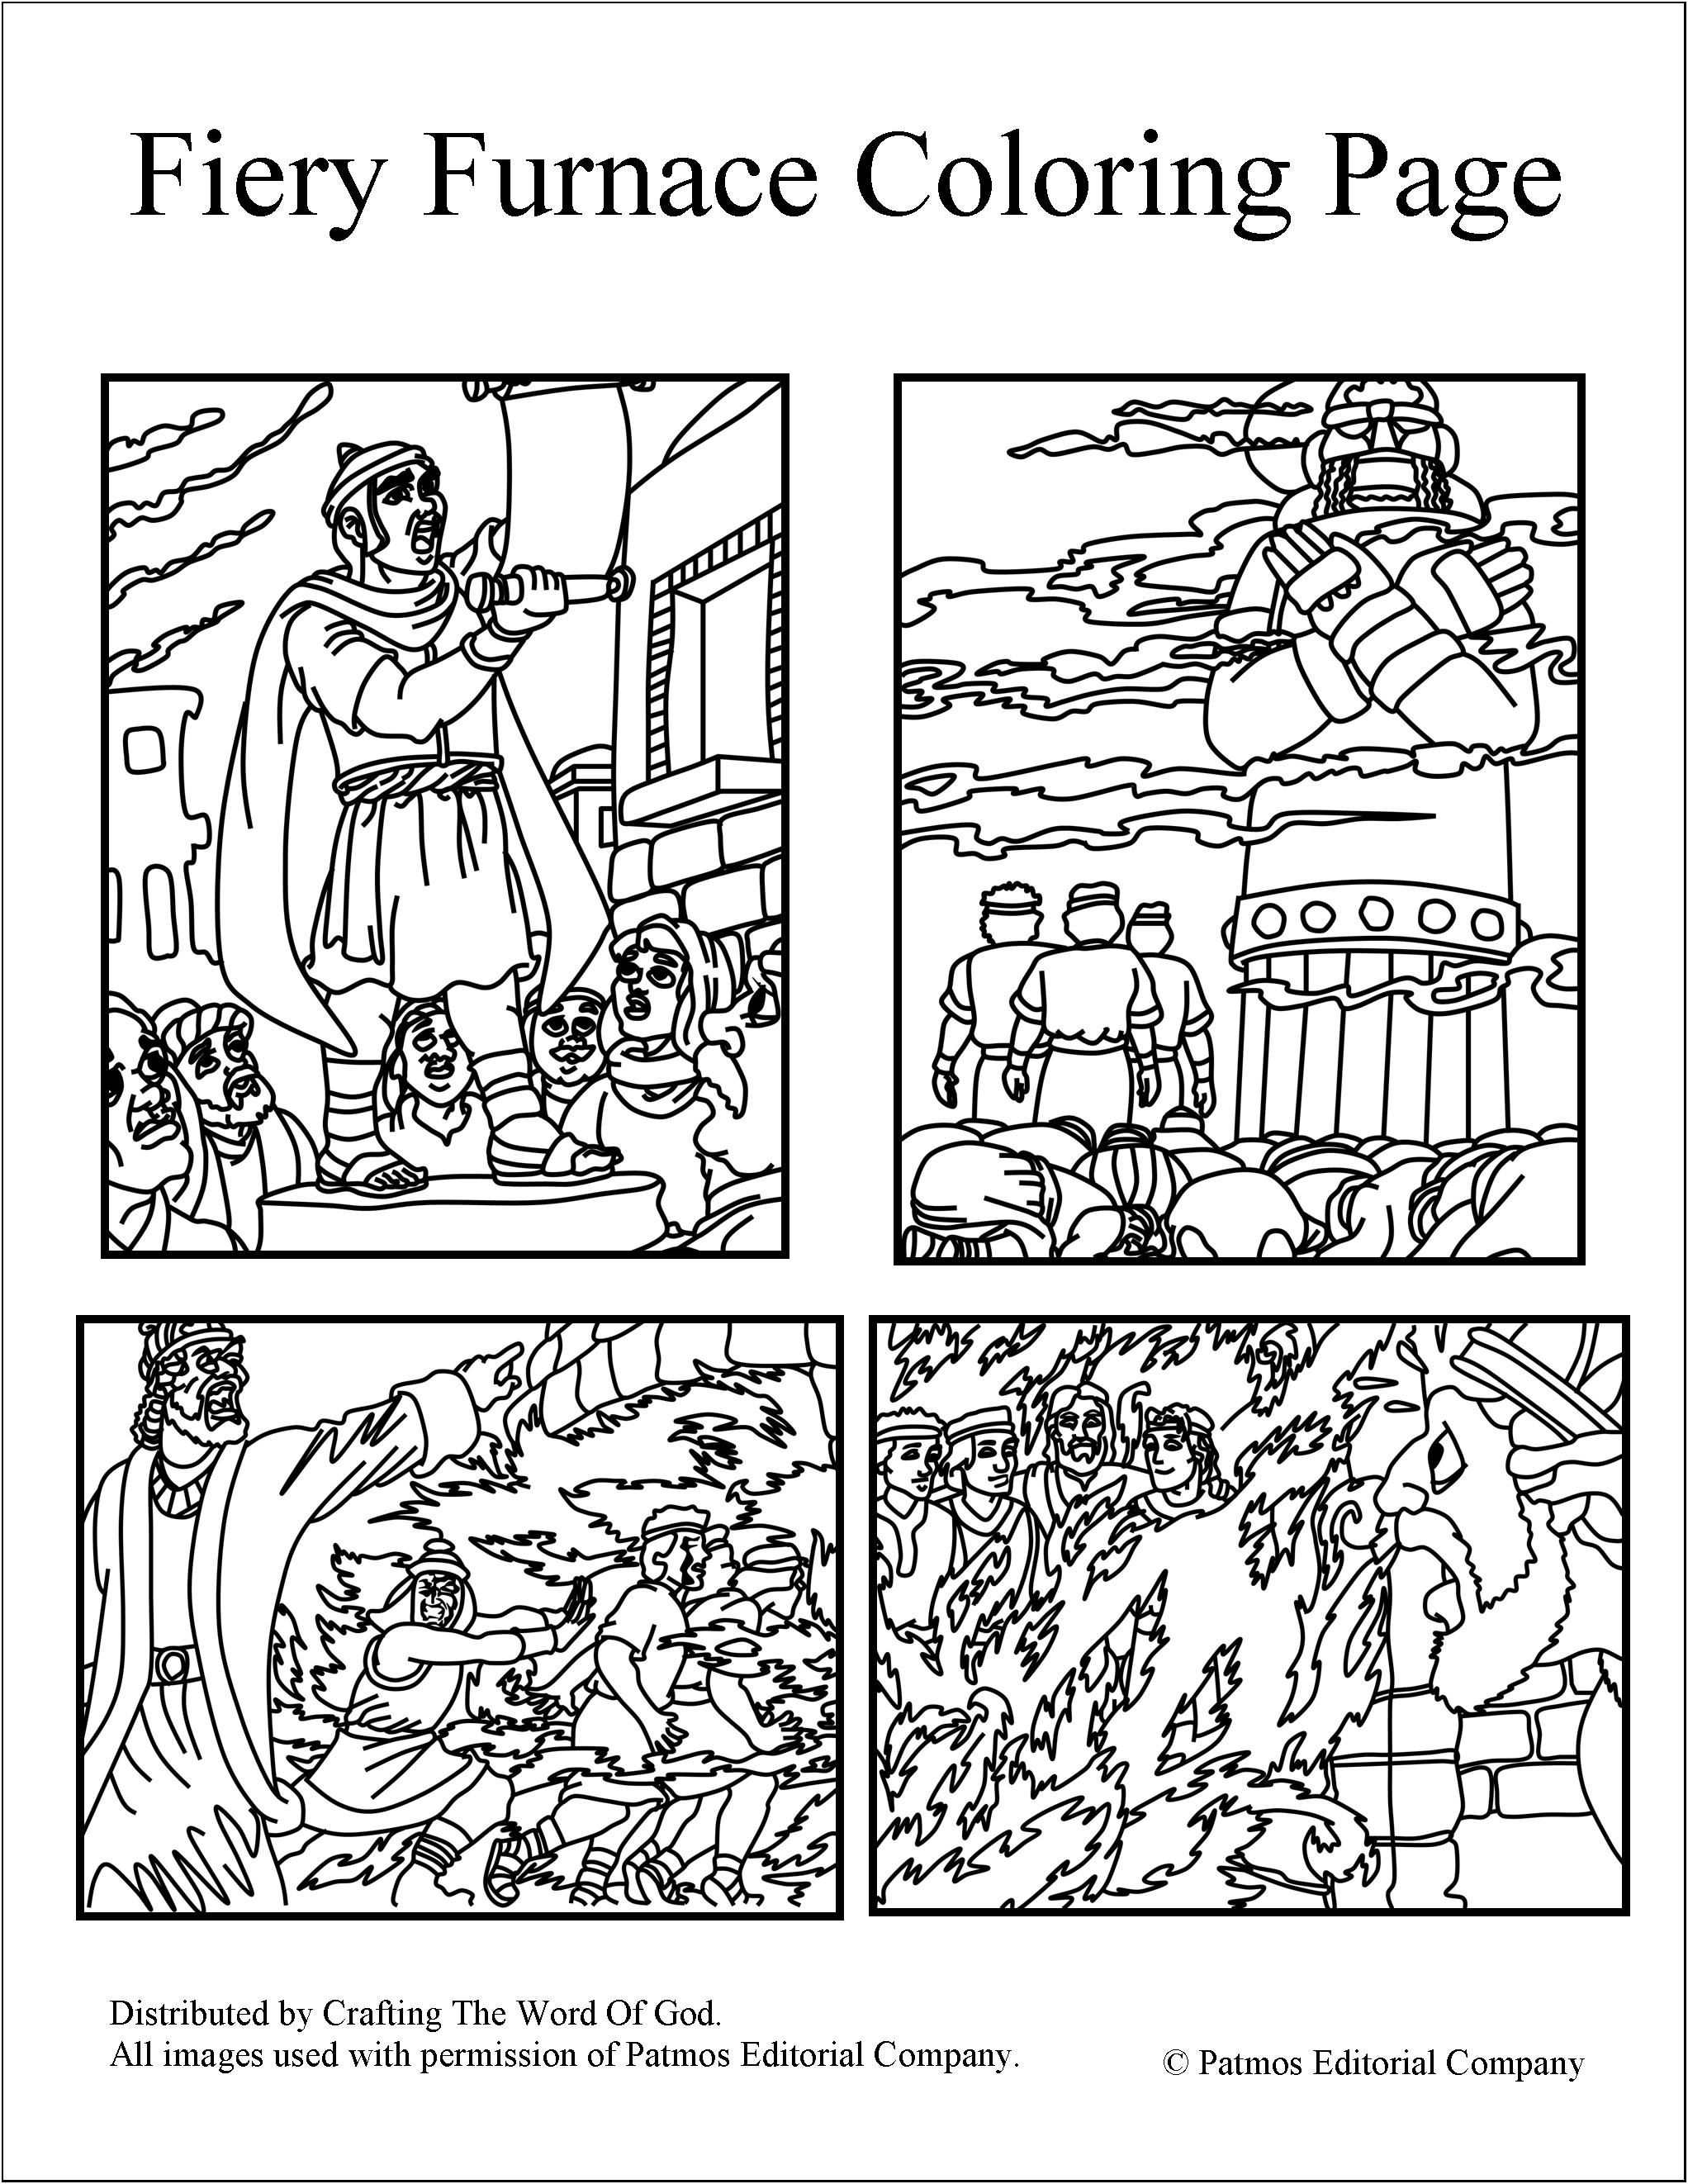 Childrens bible stories and coloring pages - Fiery Furnace Coloring Pages Day 3